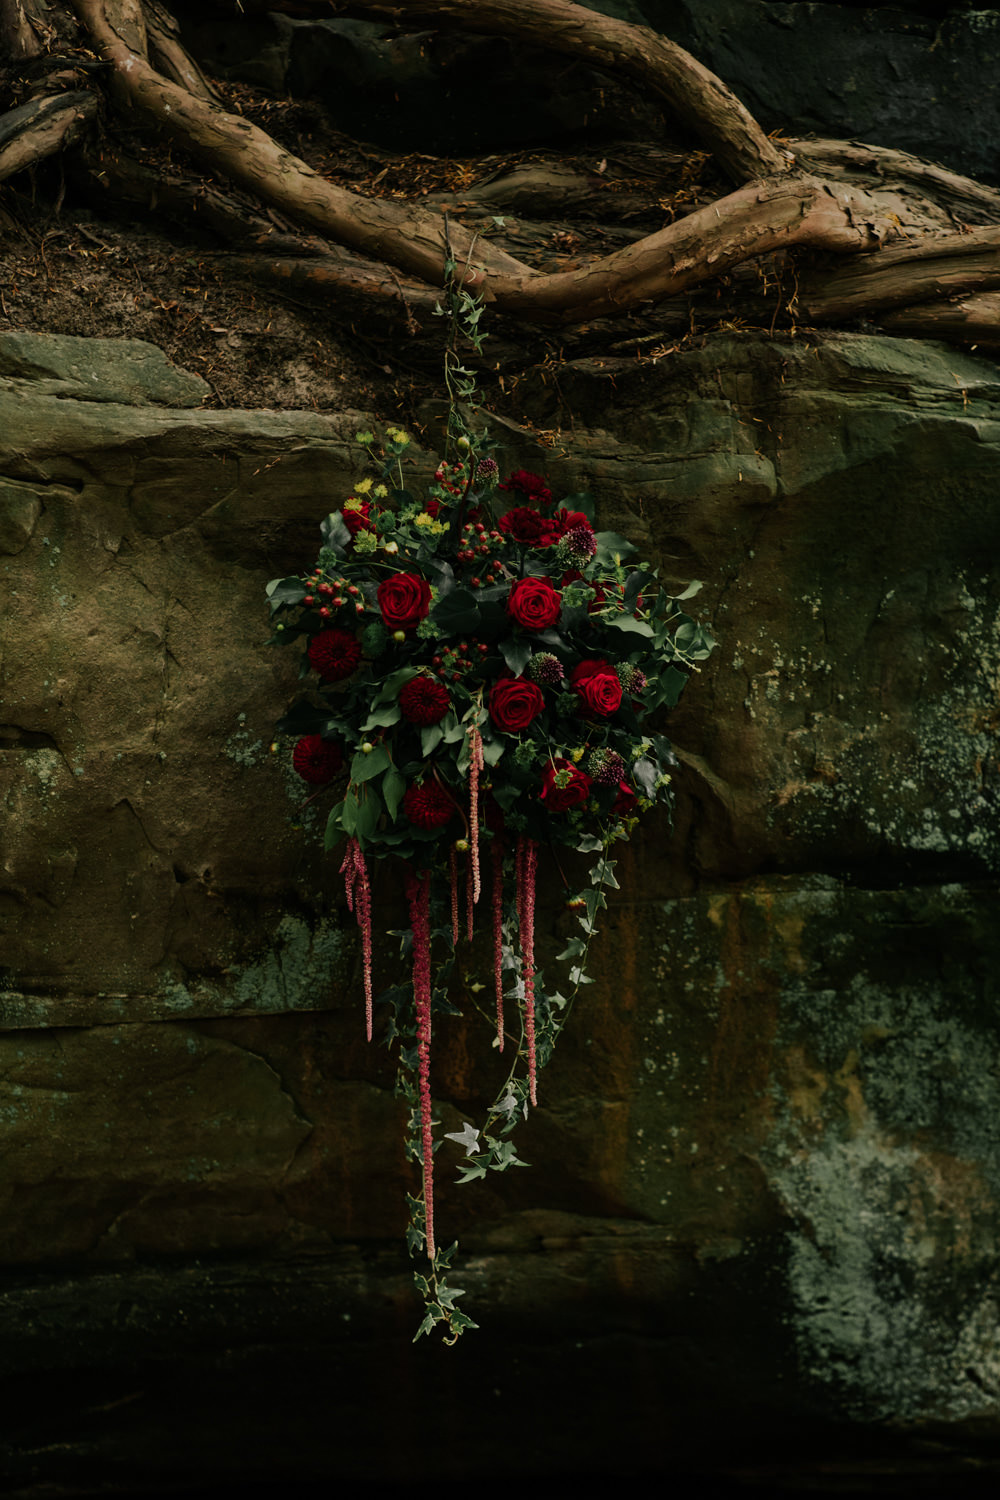 Hanging Suspended Flowers Floral Greenery Red Rose Ivy Amaranthus Snow White Wedding Inspiration Joasis Photography